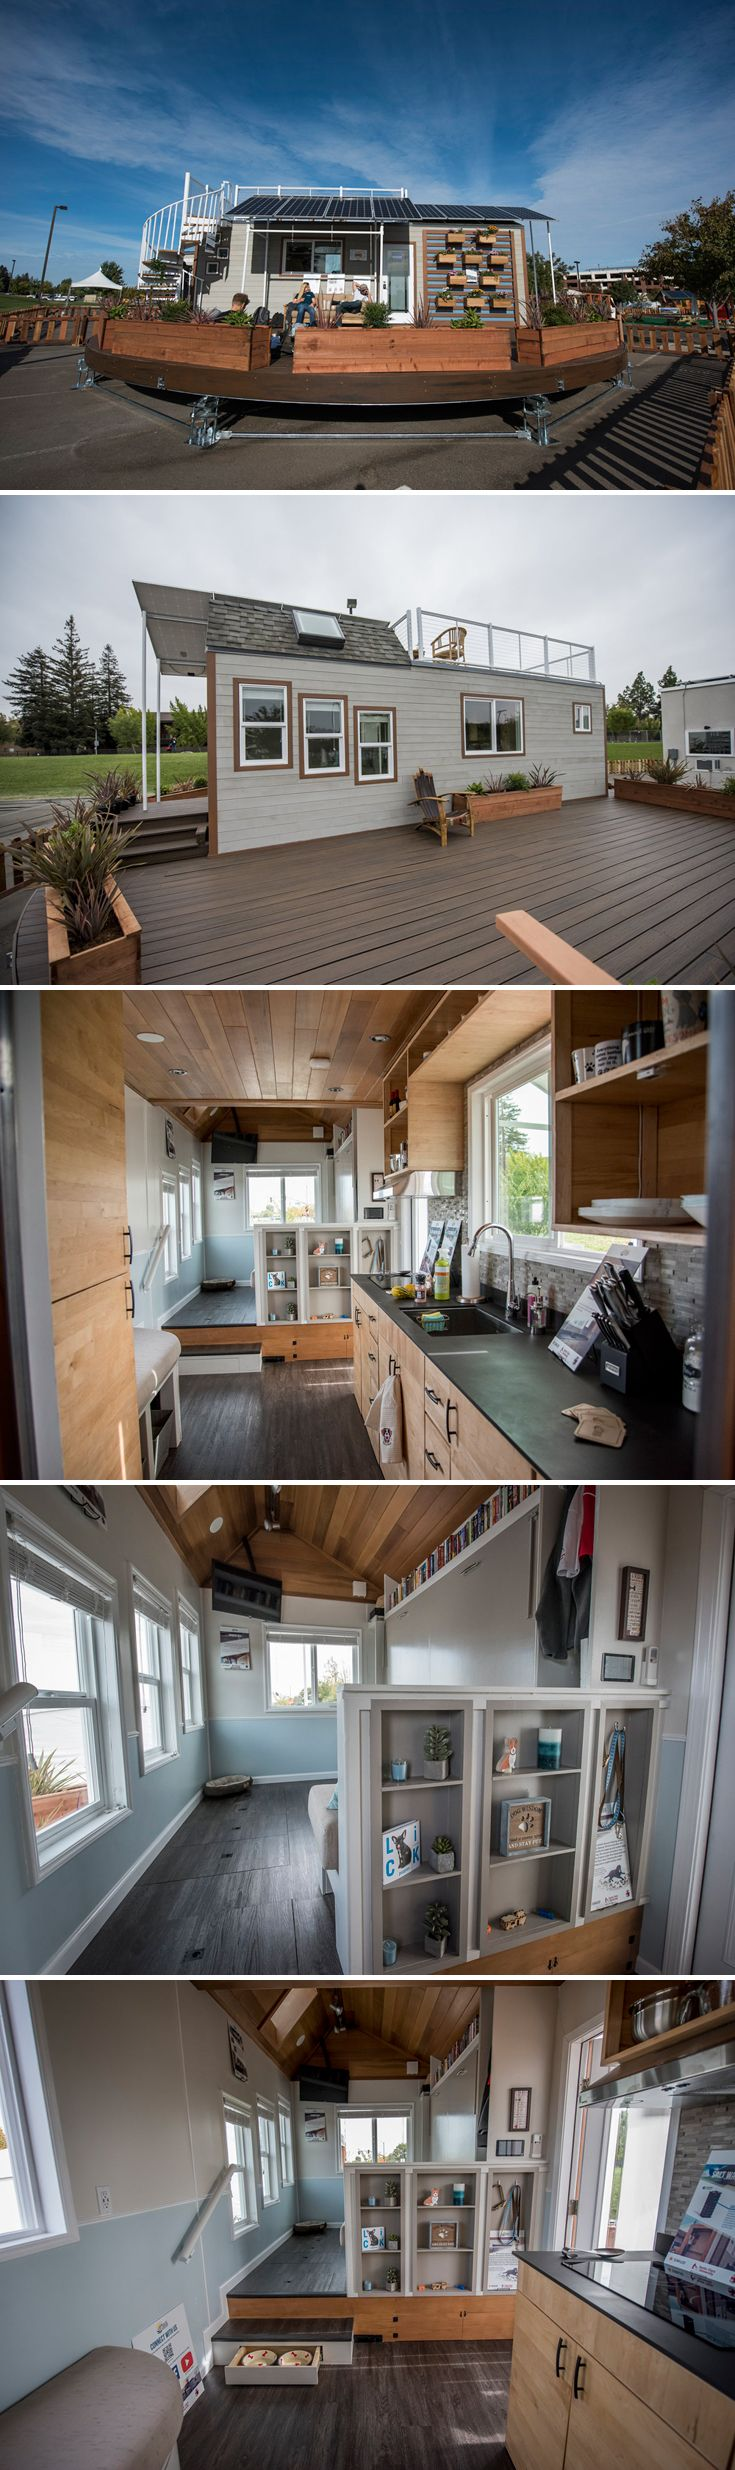 A 238 sq.ft. off-grid tiny house powered entirely by eight 330 Watt Sunmodule solar panels. First place winner of the 2016 SMUD Tiny House Competition.